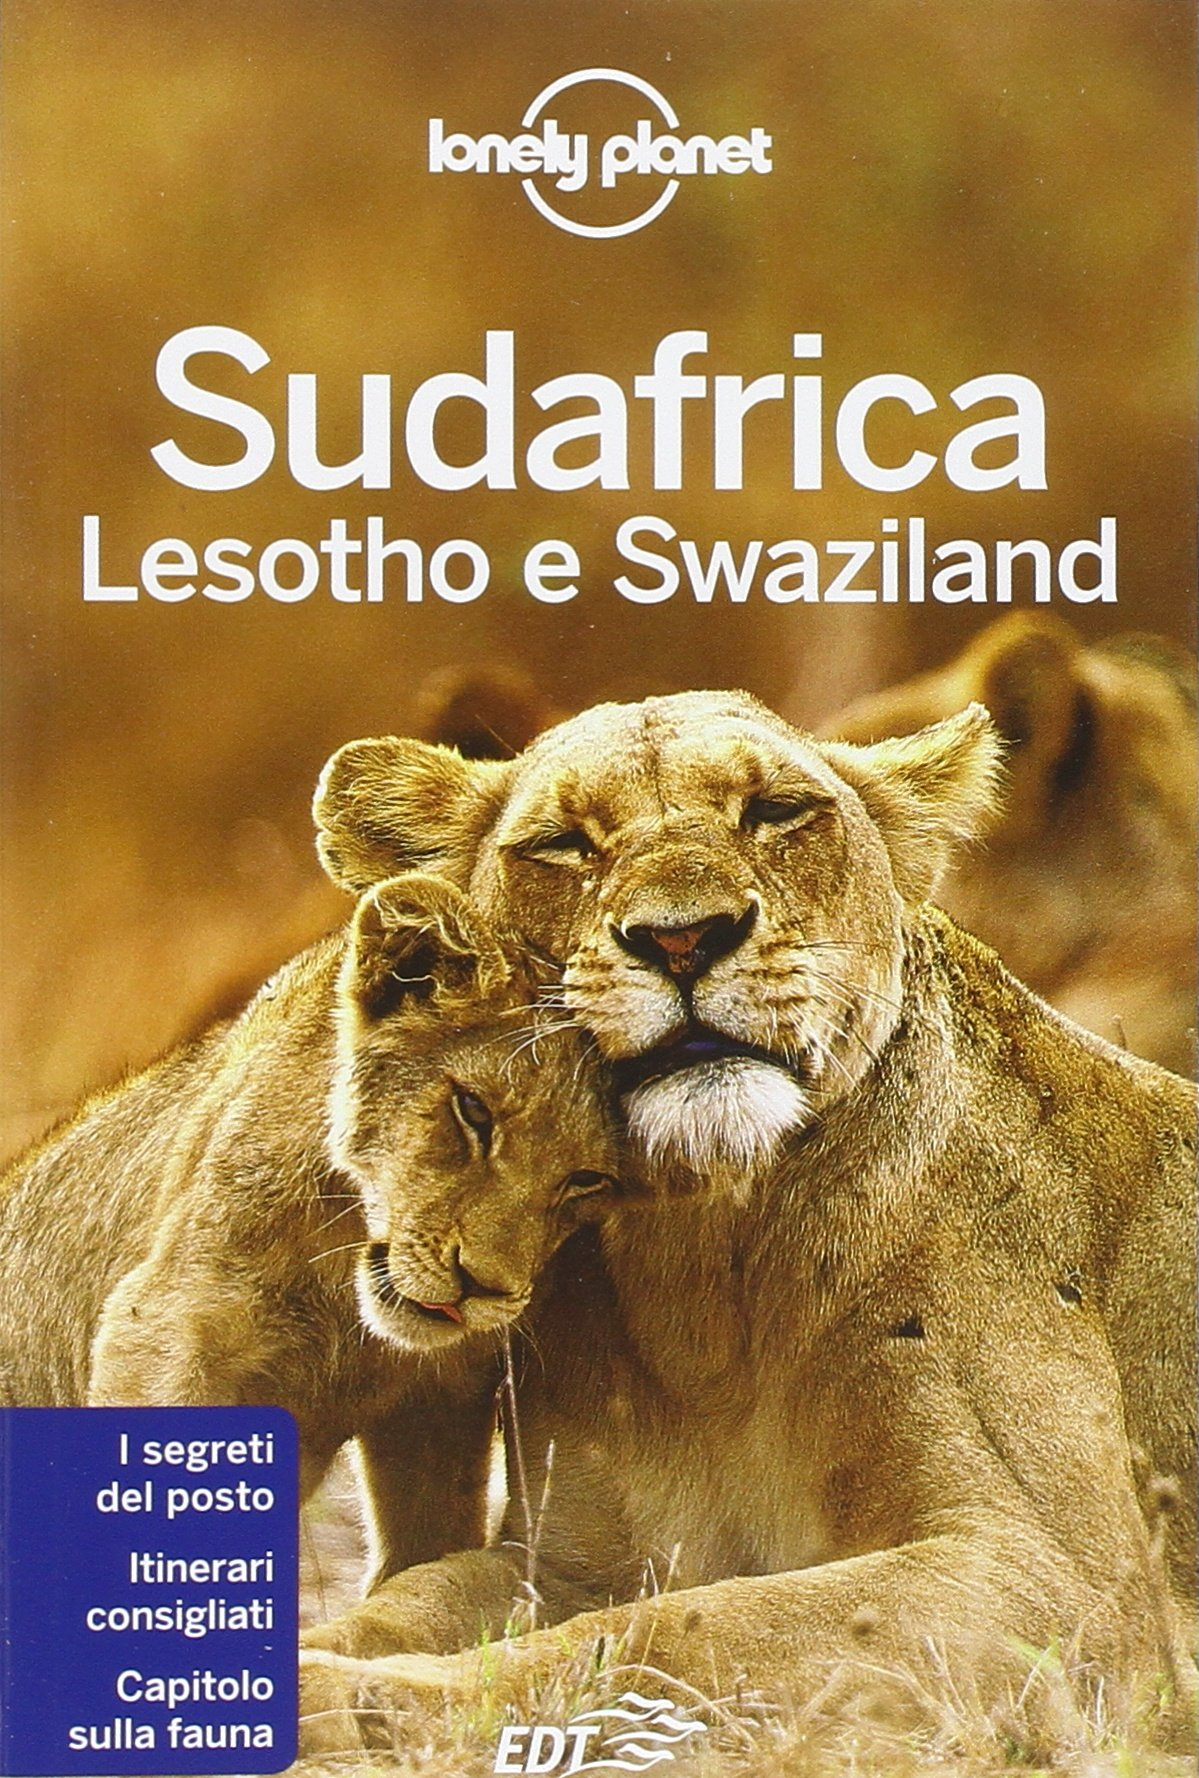 Sudafrica, Lesotho e Swaziland Guide EDT/Lonely Planet: Amazon.es ...